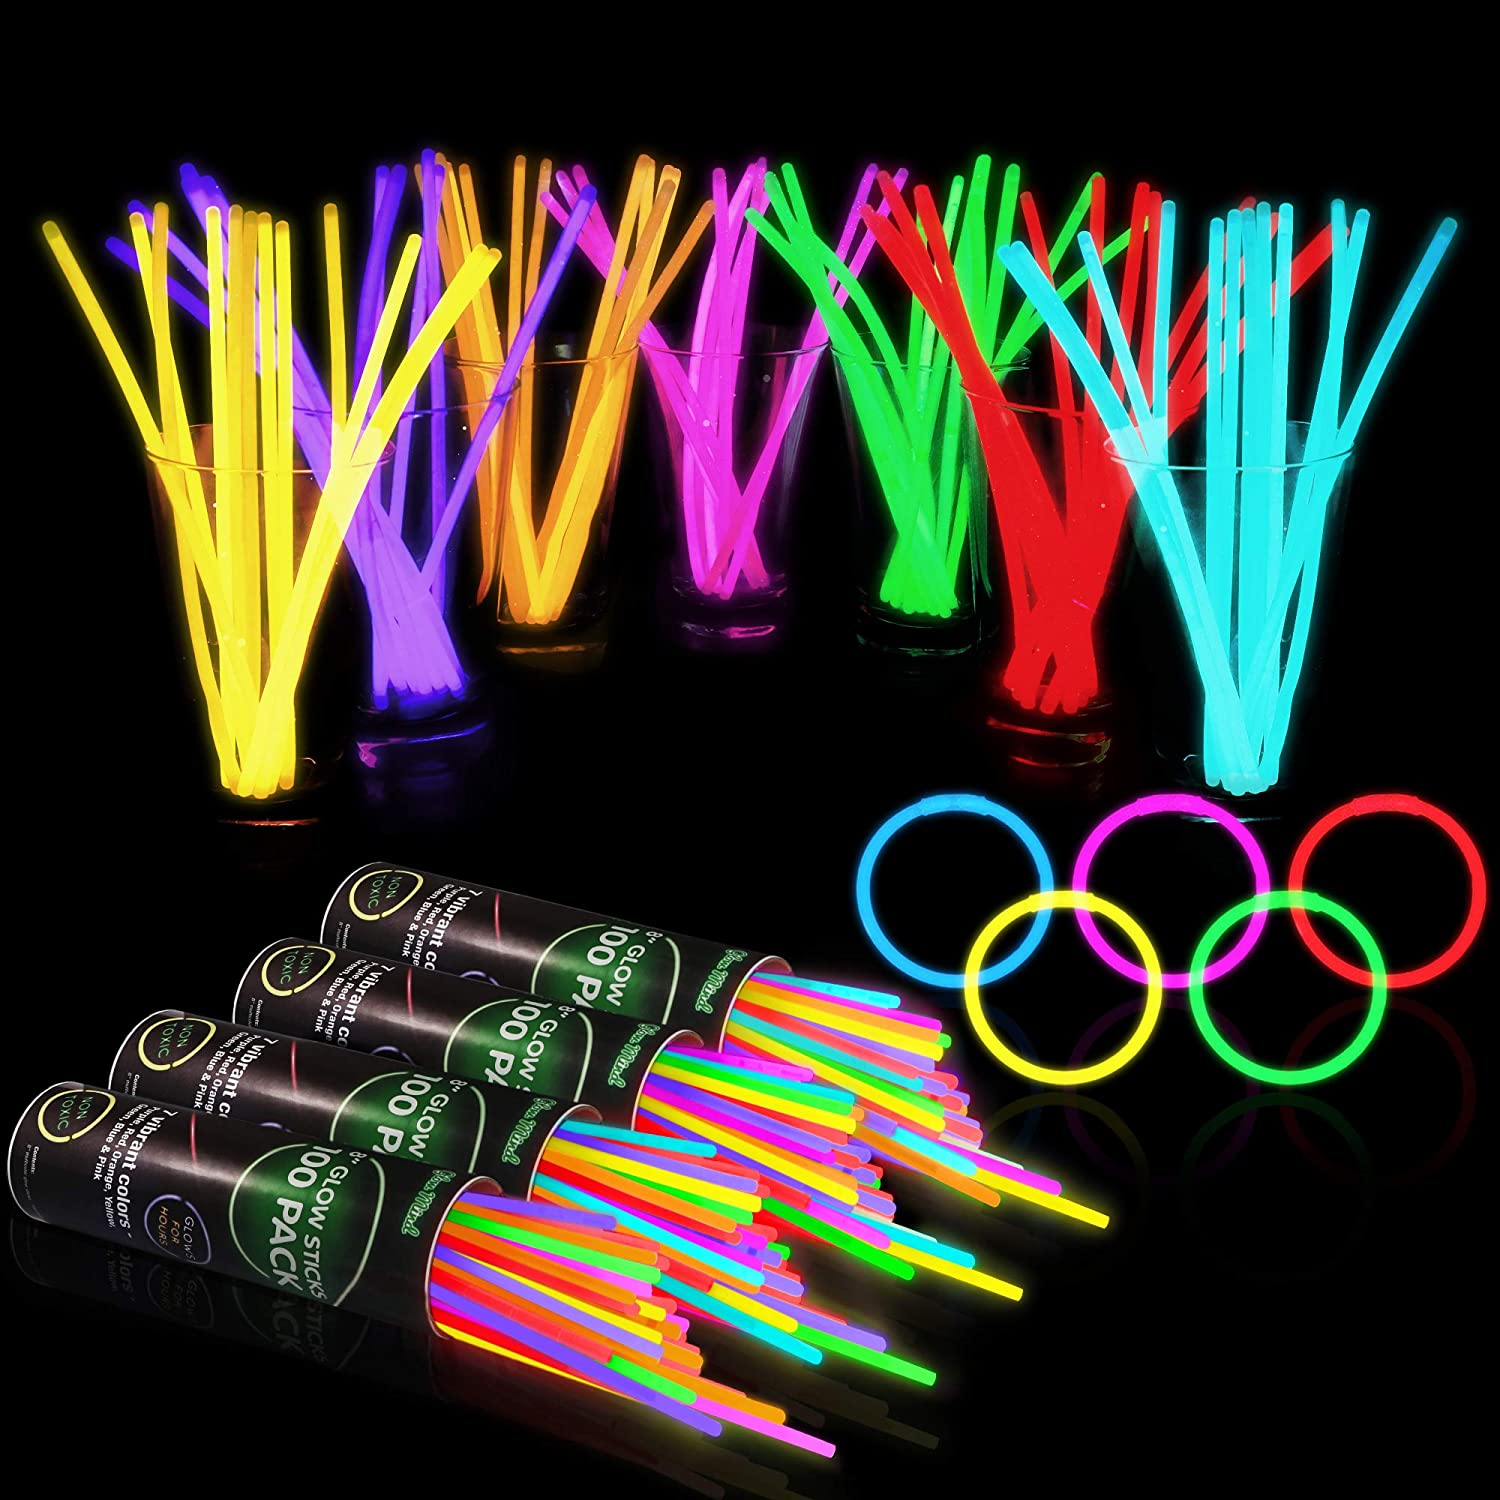 """B07SZ8PMJV 400 Glow Sticks Bulk Party Supplies - Glow in The Dark Bracelets and Necklaces Party Pack, Includes 7 Vibrant Colors of 8"""" Glowsticks and Connectors 81Da6eUMuVL"""